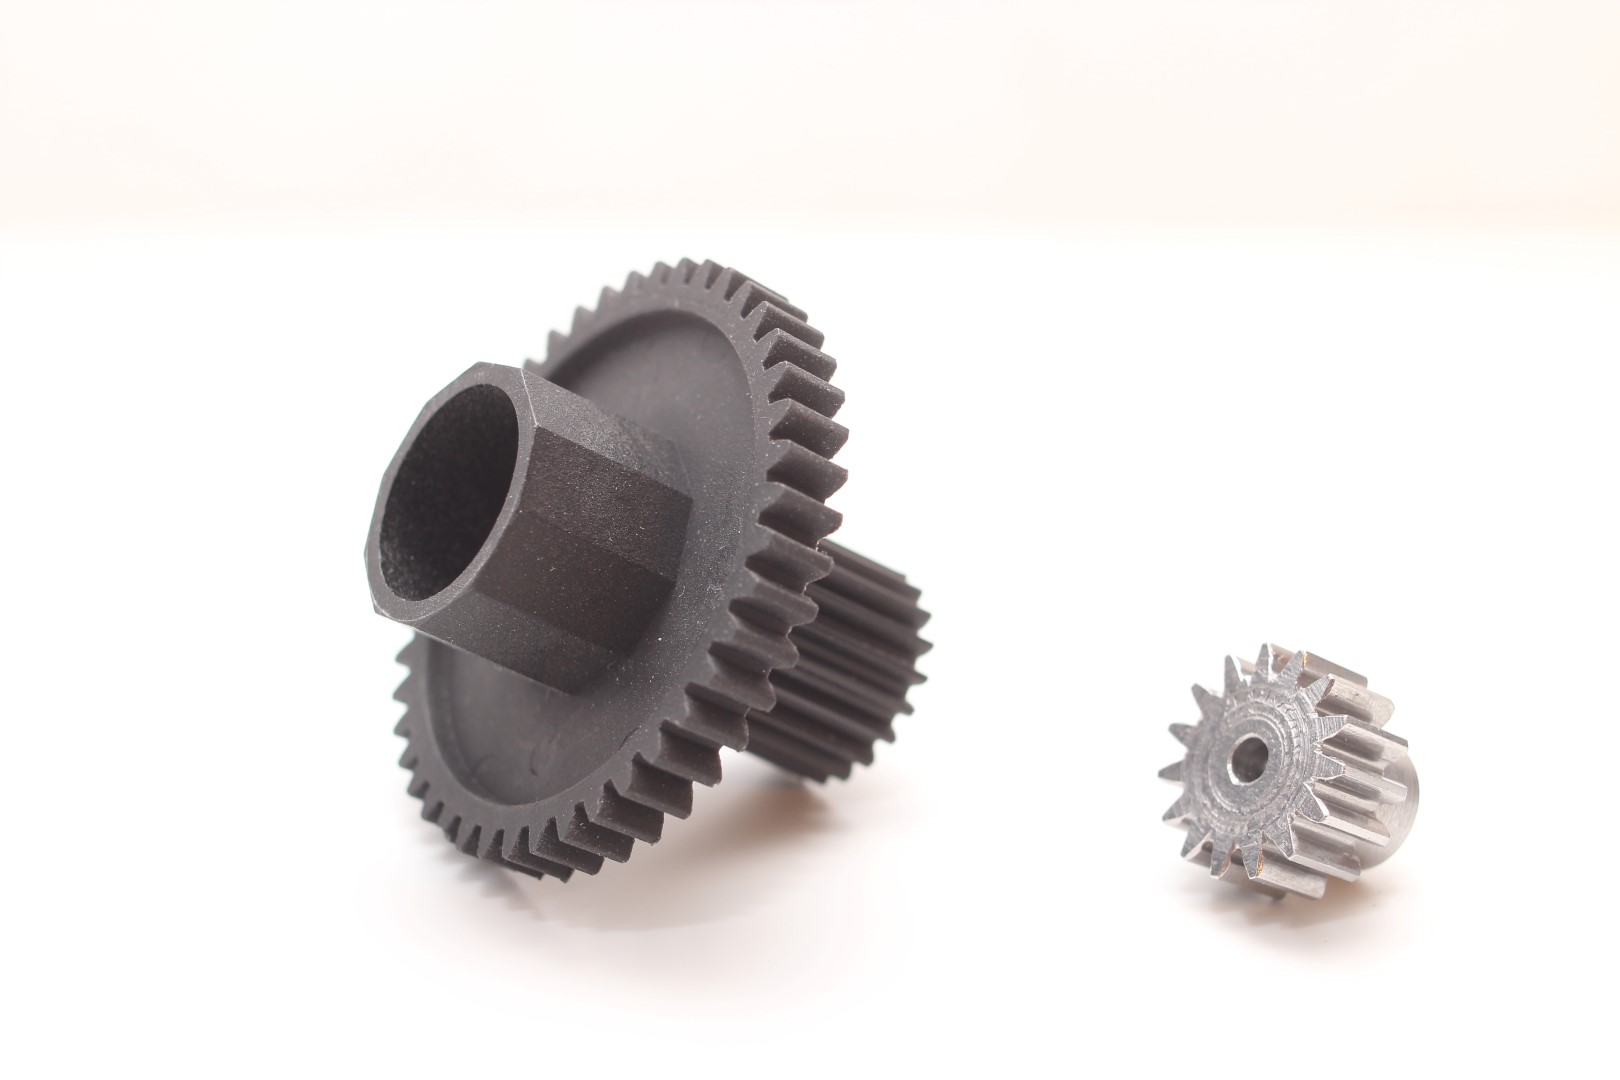 Modified gears